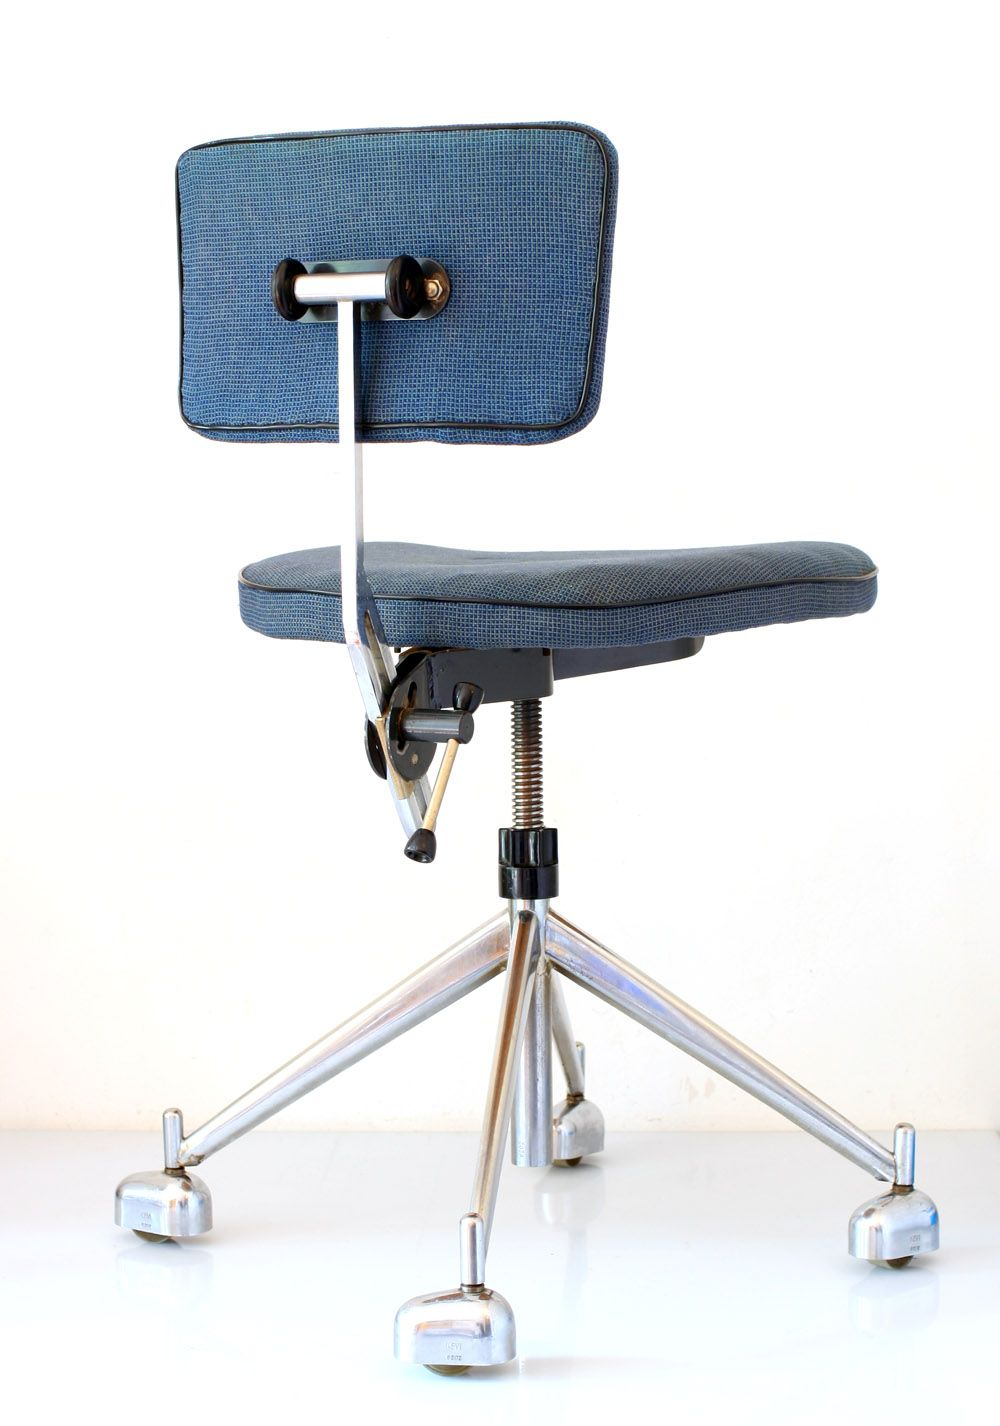 scandinavian office chairs. KEVI Adjustable Retro Office Chair Scandinavian Chairs N